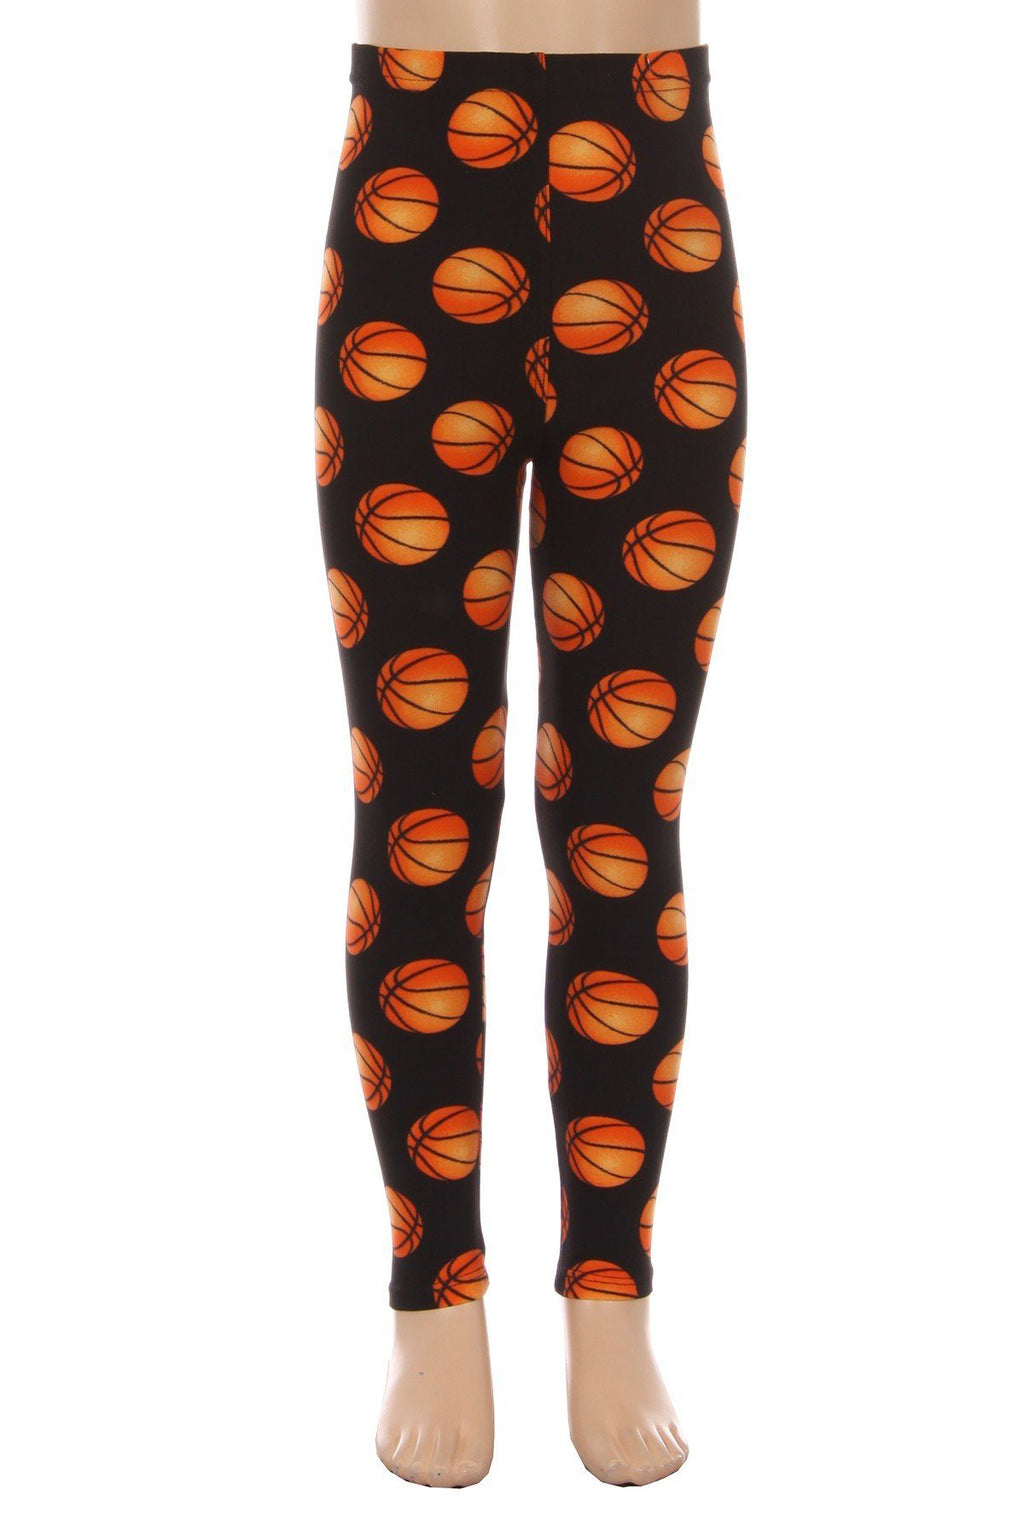 Girl's Basketball Printed Leggings Orange: S and L - MomMe and More Matching Mommy and Me Clothing